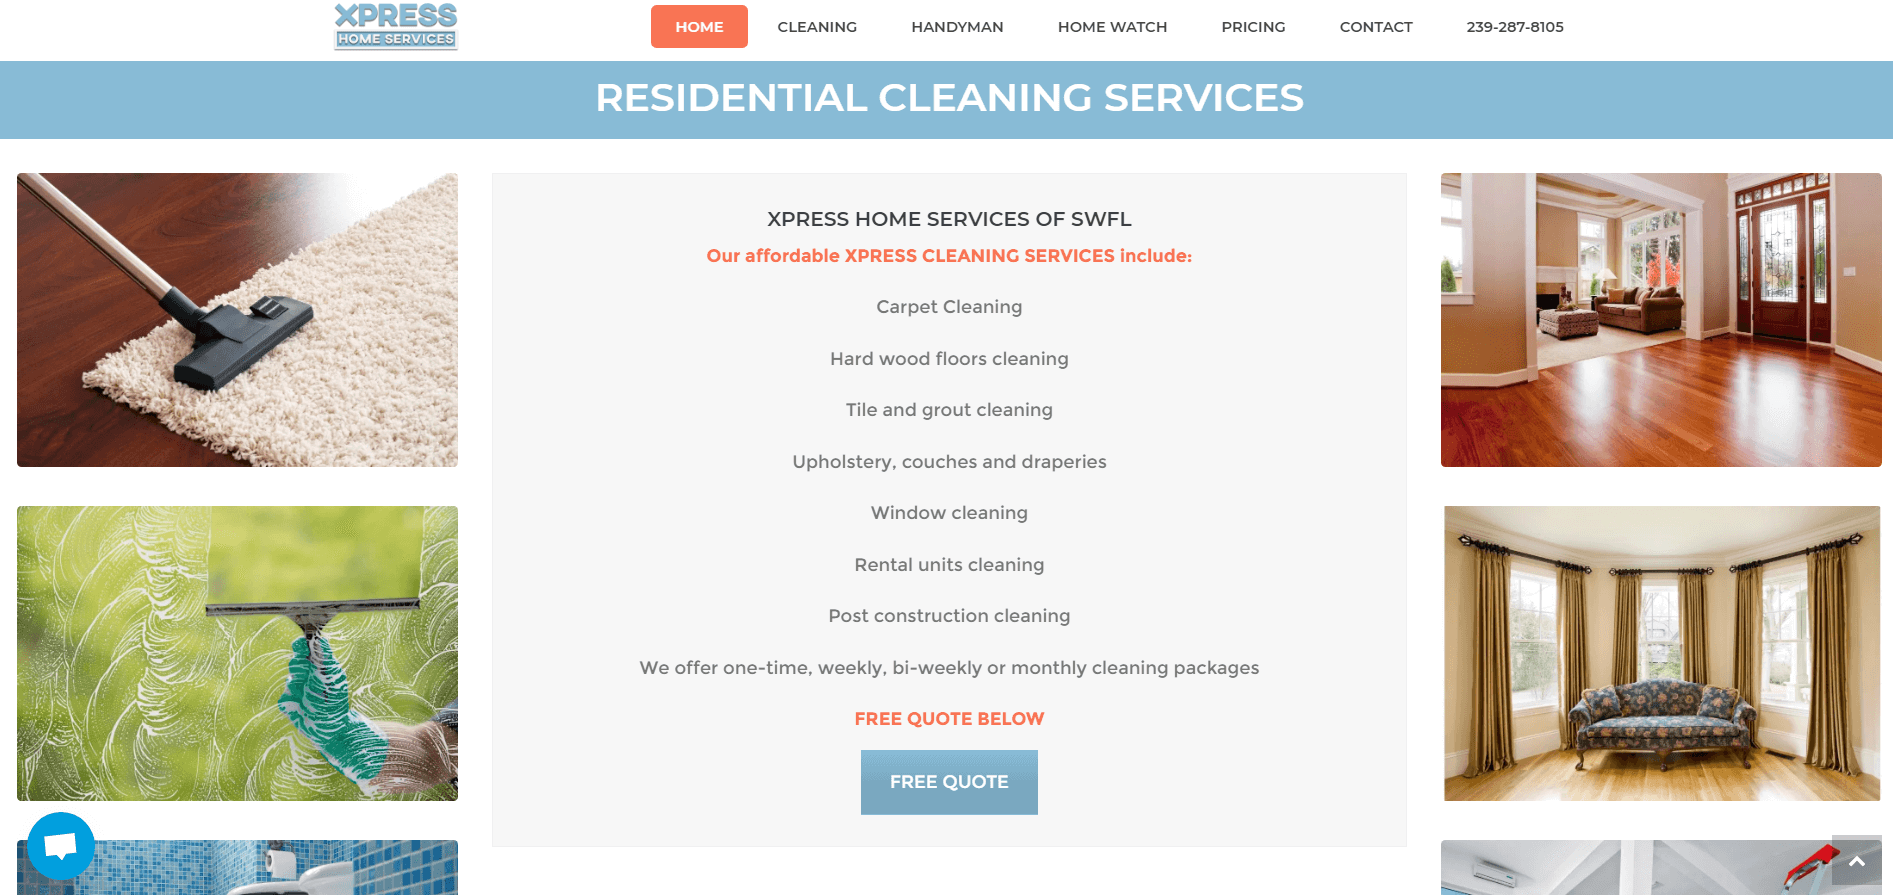 xpress home services cleaning page